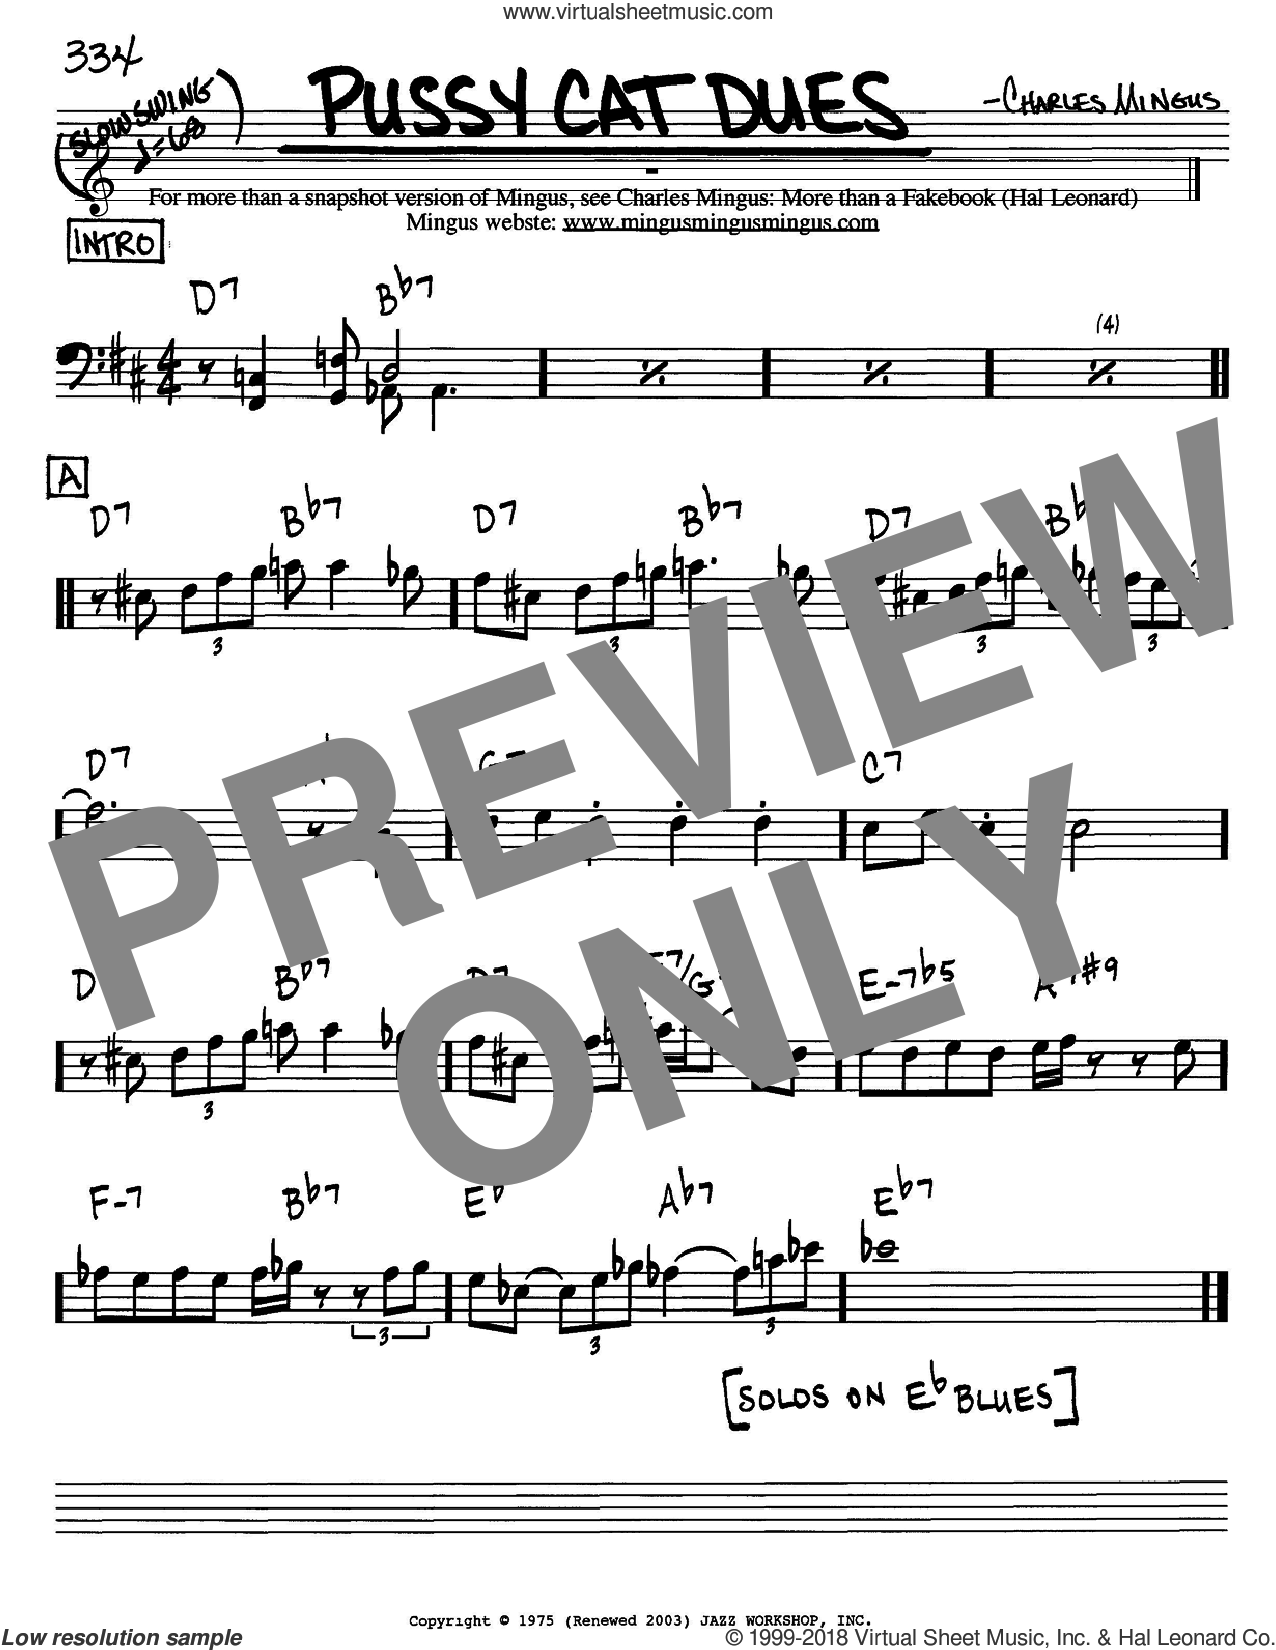 Pussy Cat Dues sheet music for voice and other instruments (Bass Clef ) by Charles Mingus. Score Image Preview.